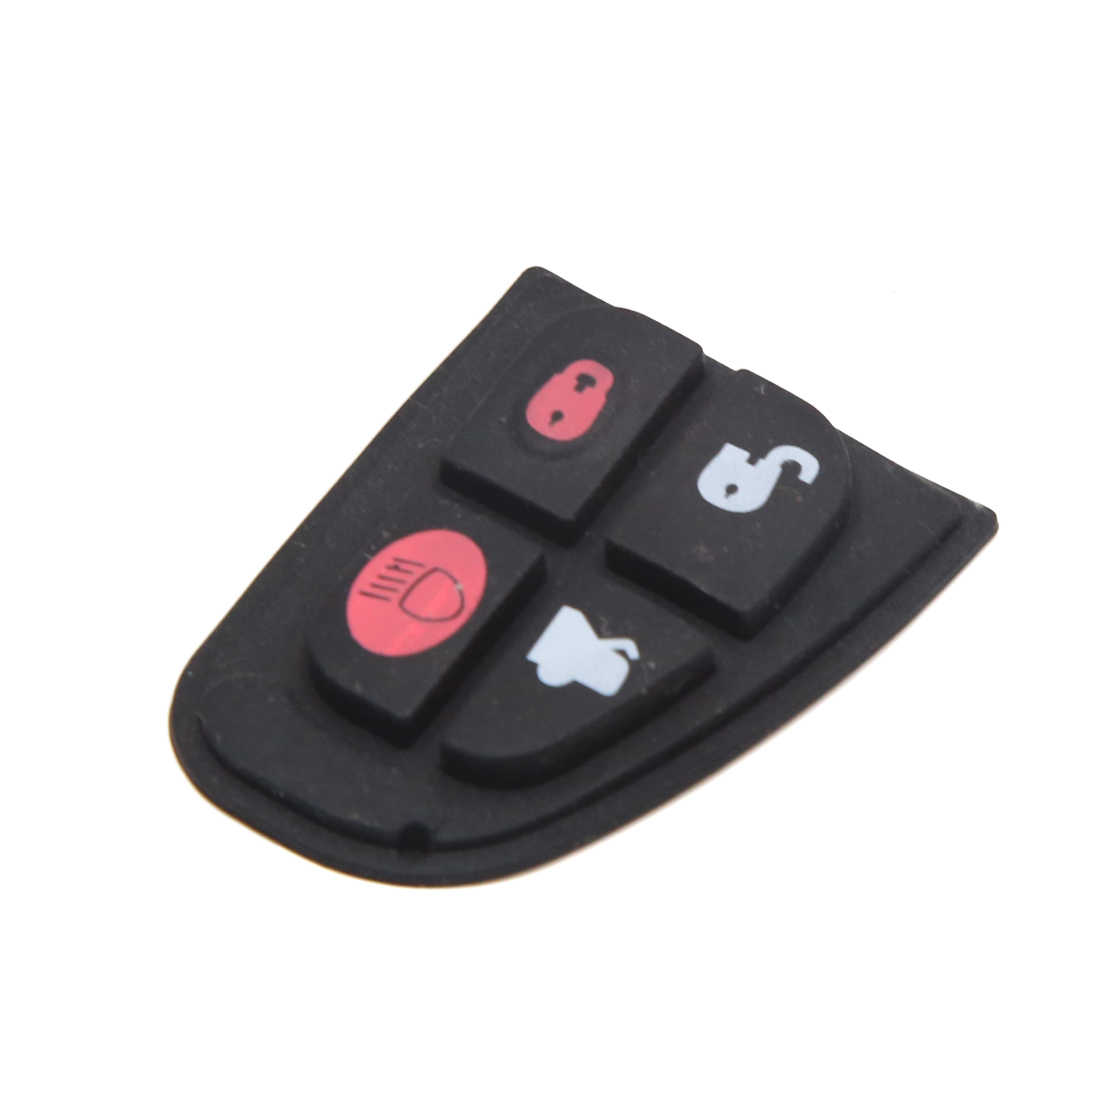 4 Buttons Car Remote Fob Case Insert Rubber Pad Keypad Replacement for Jaguar